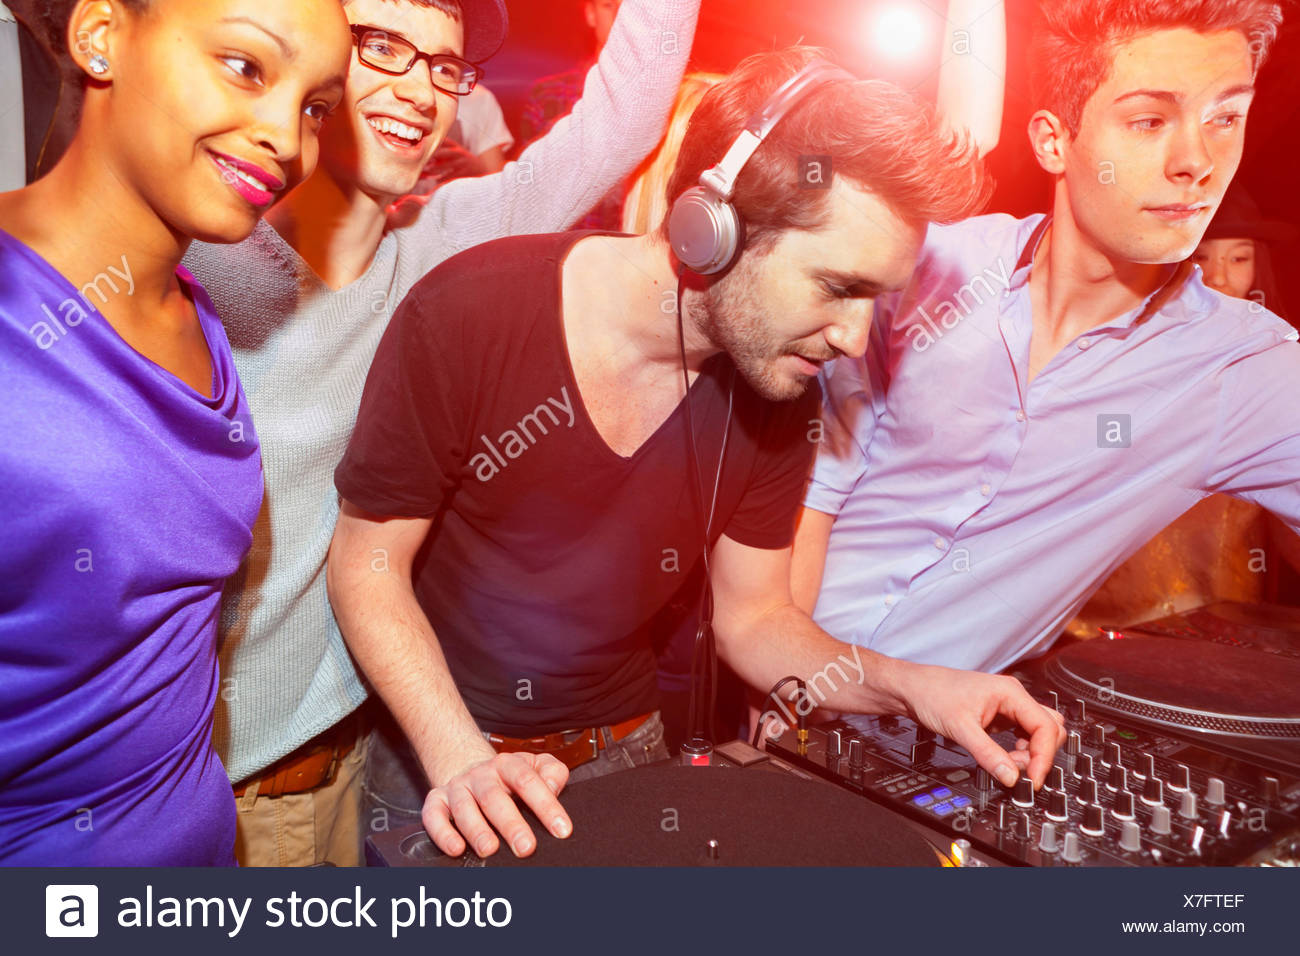 Disc jockey with group of people behind mixing desk - Stock Image